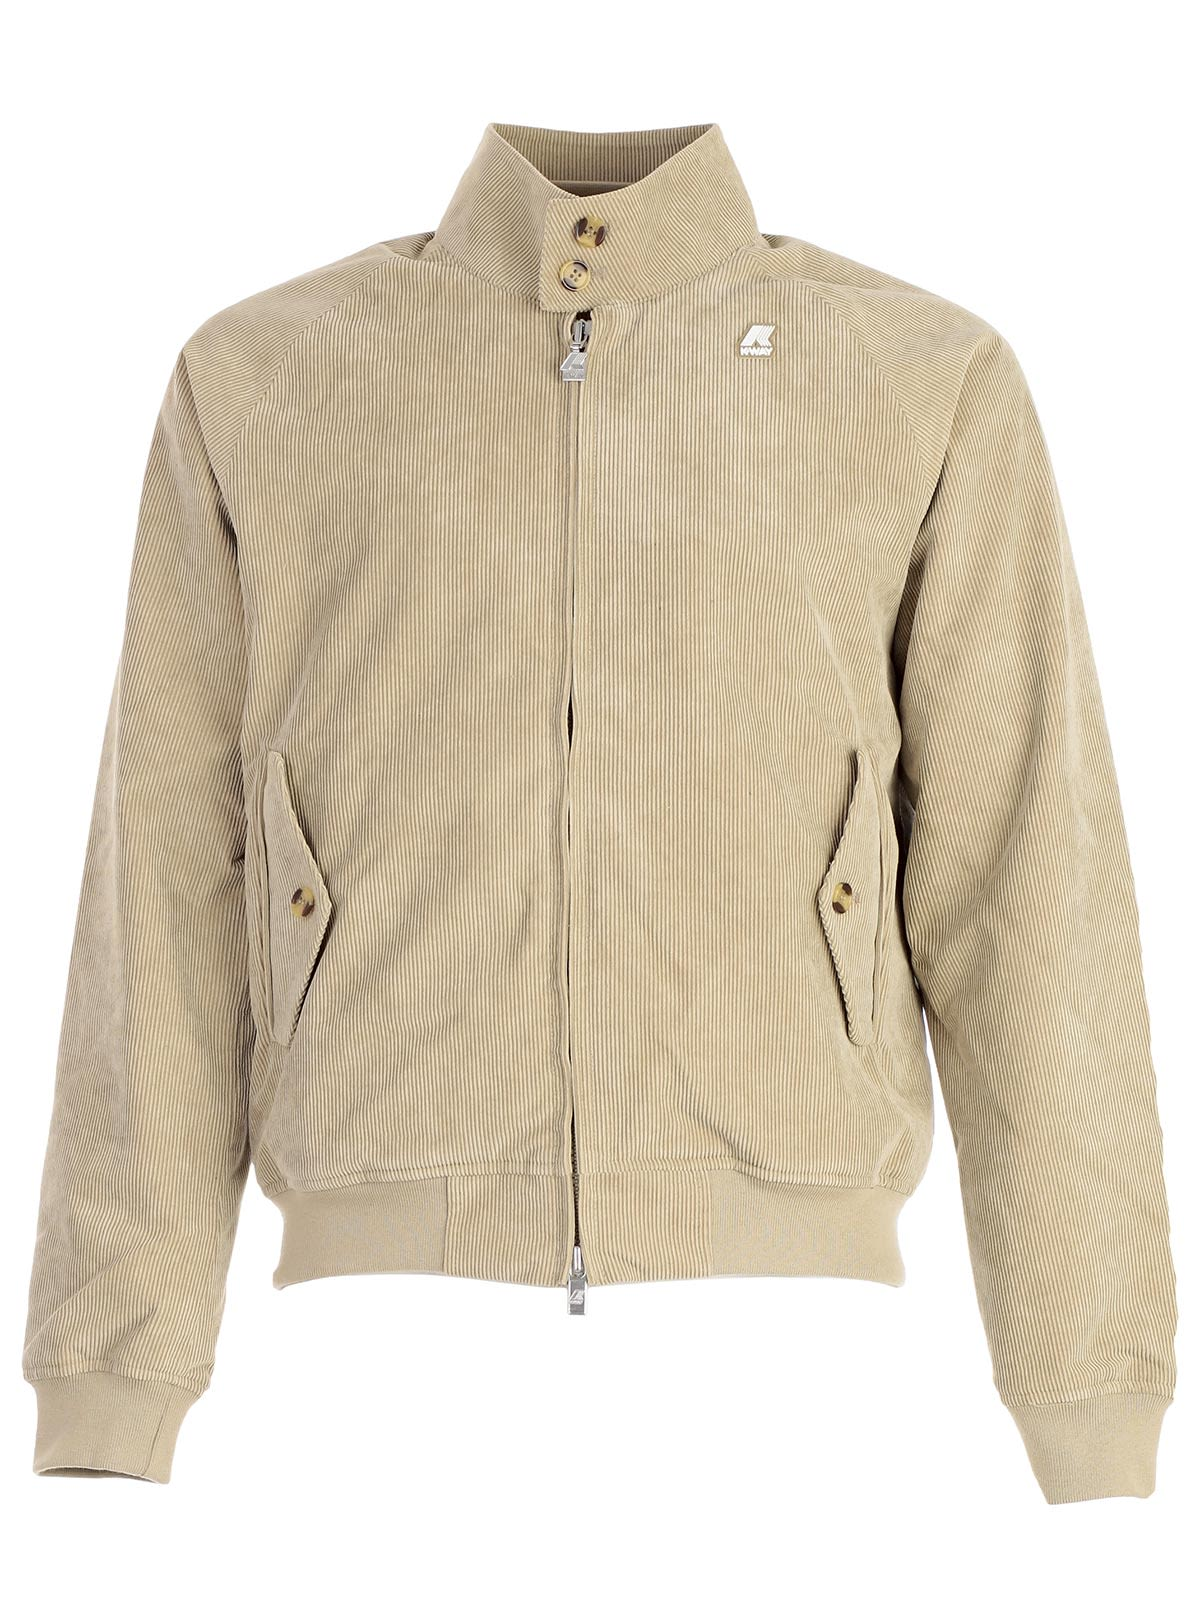 K-WAY CORDUROY BOMBER